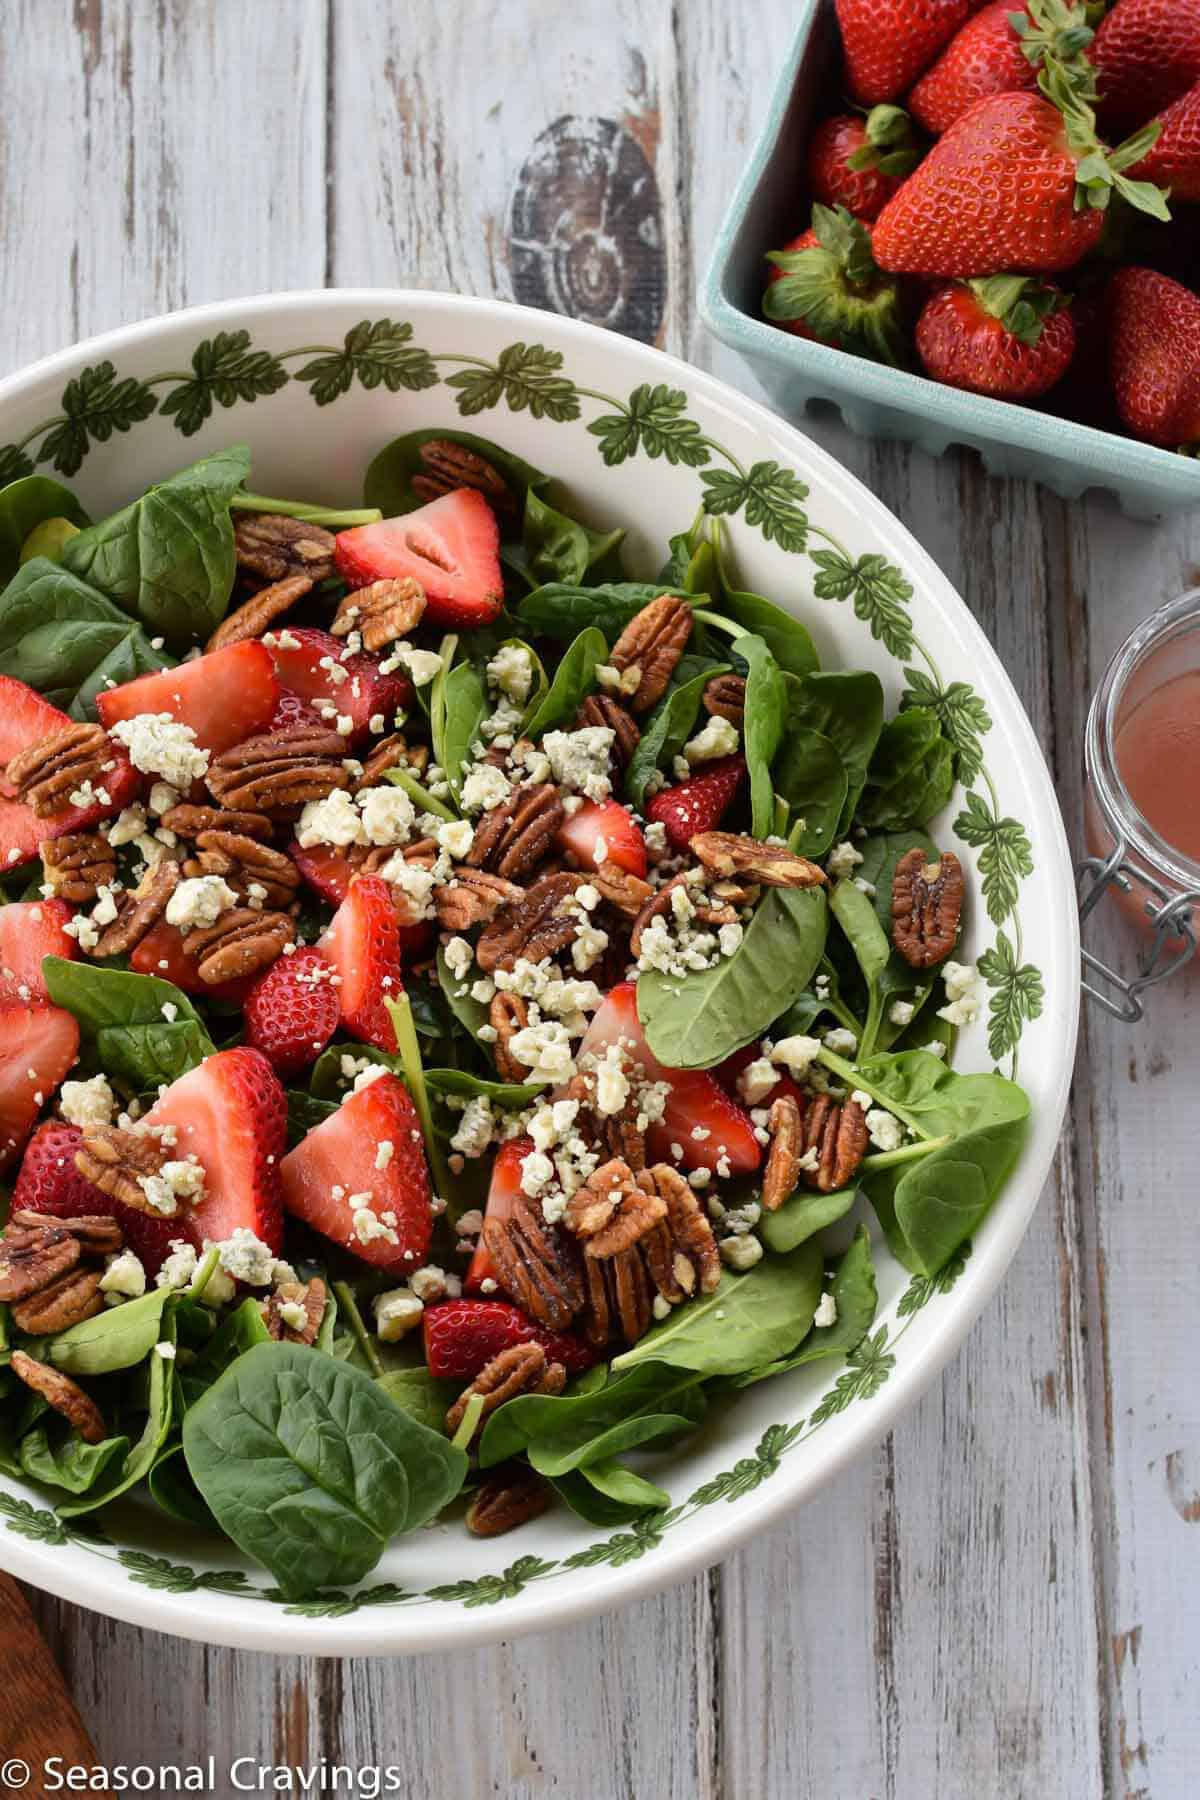 Strawberry and Pecan Spinach Salad is easy to put together, gluten-free and a great way to show off summer strawberries.